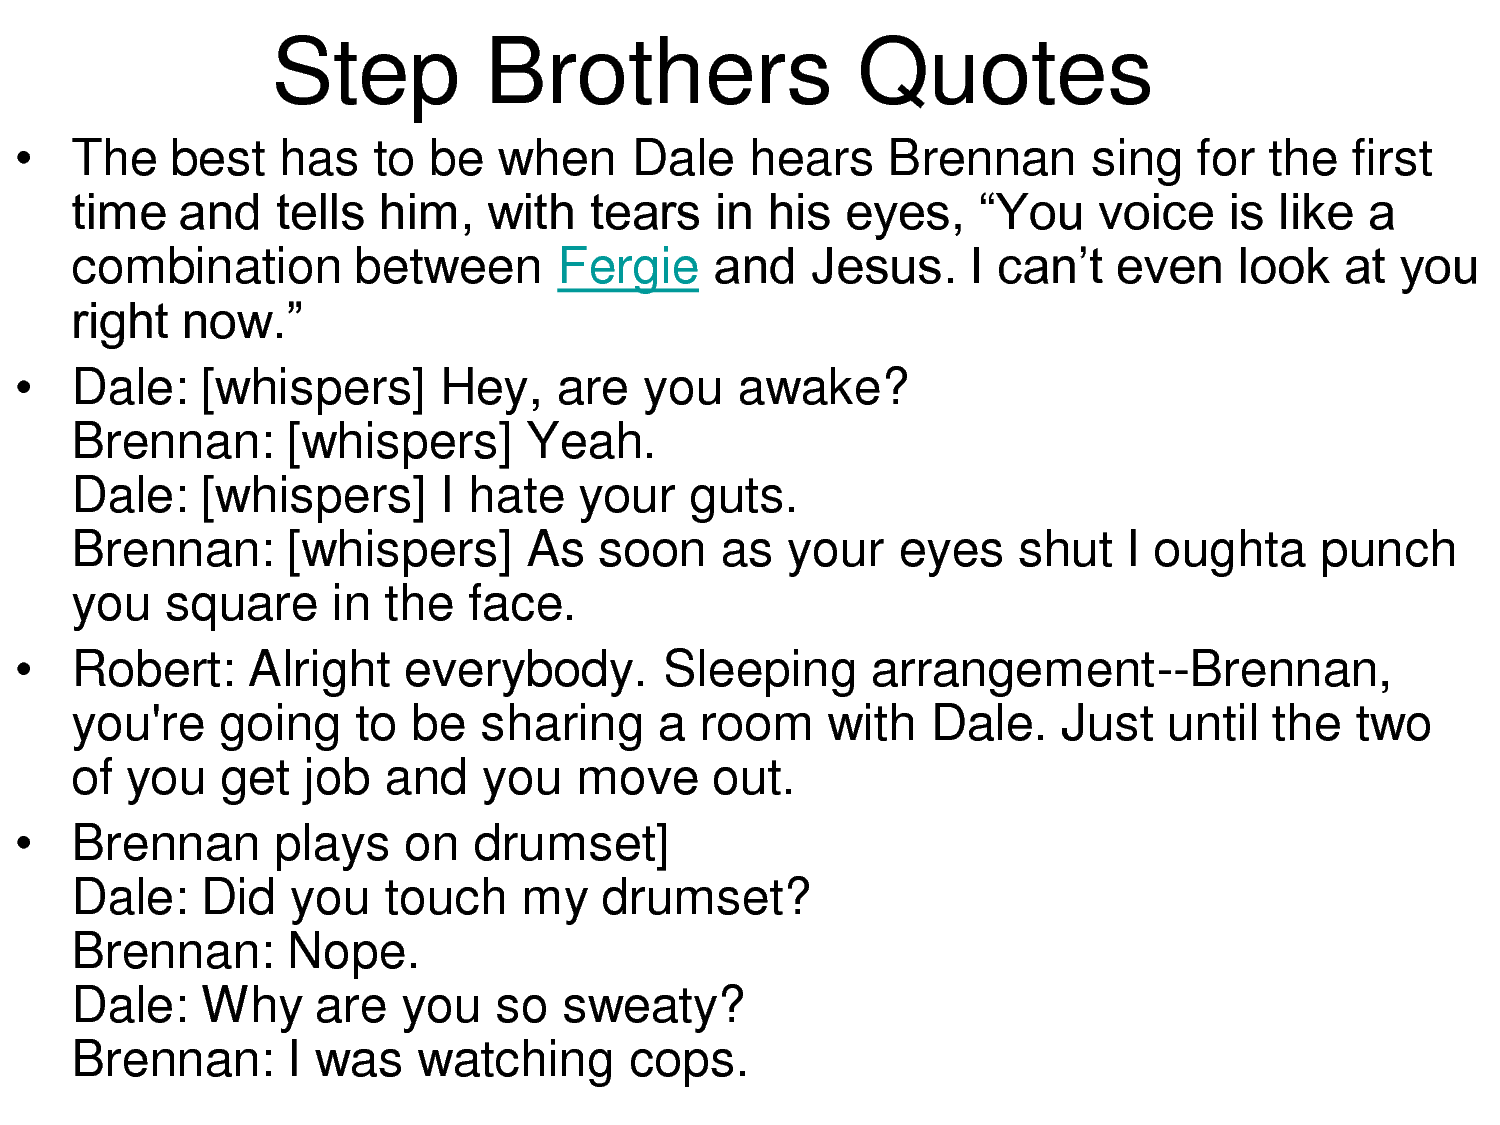 Step Brother Quotes…